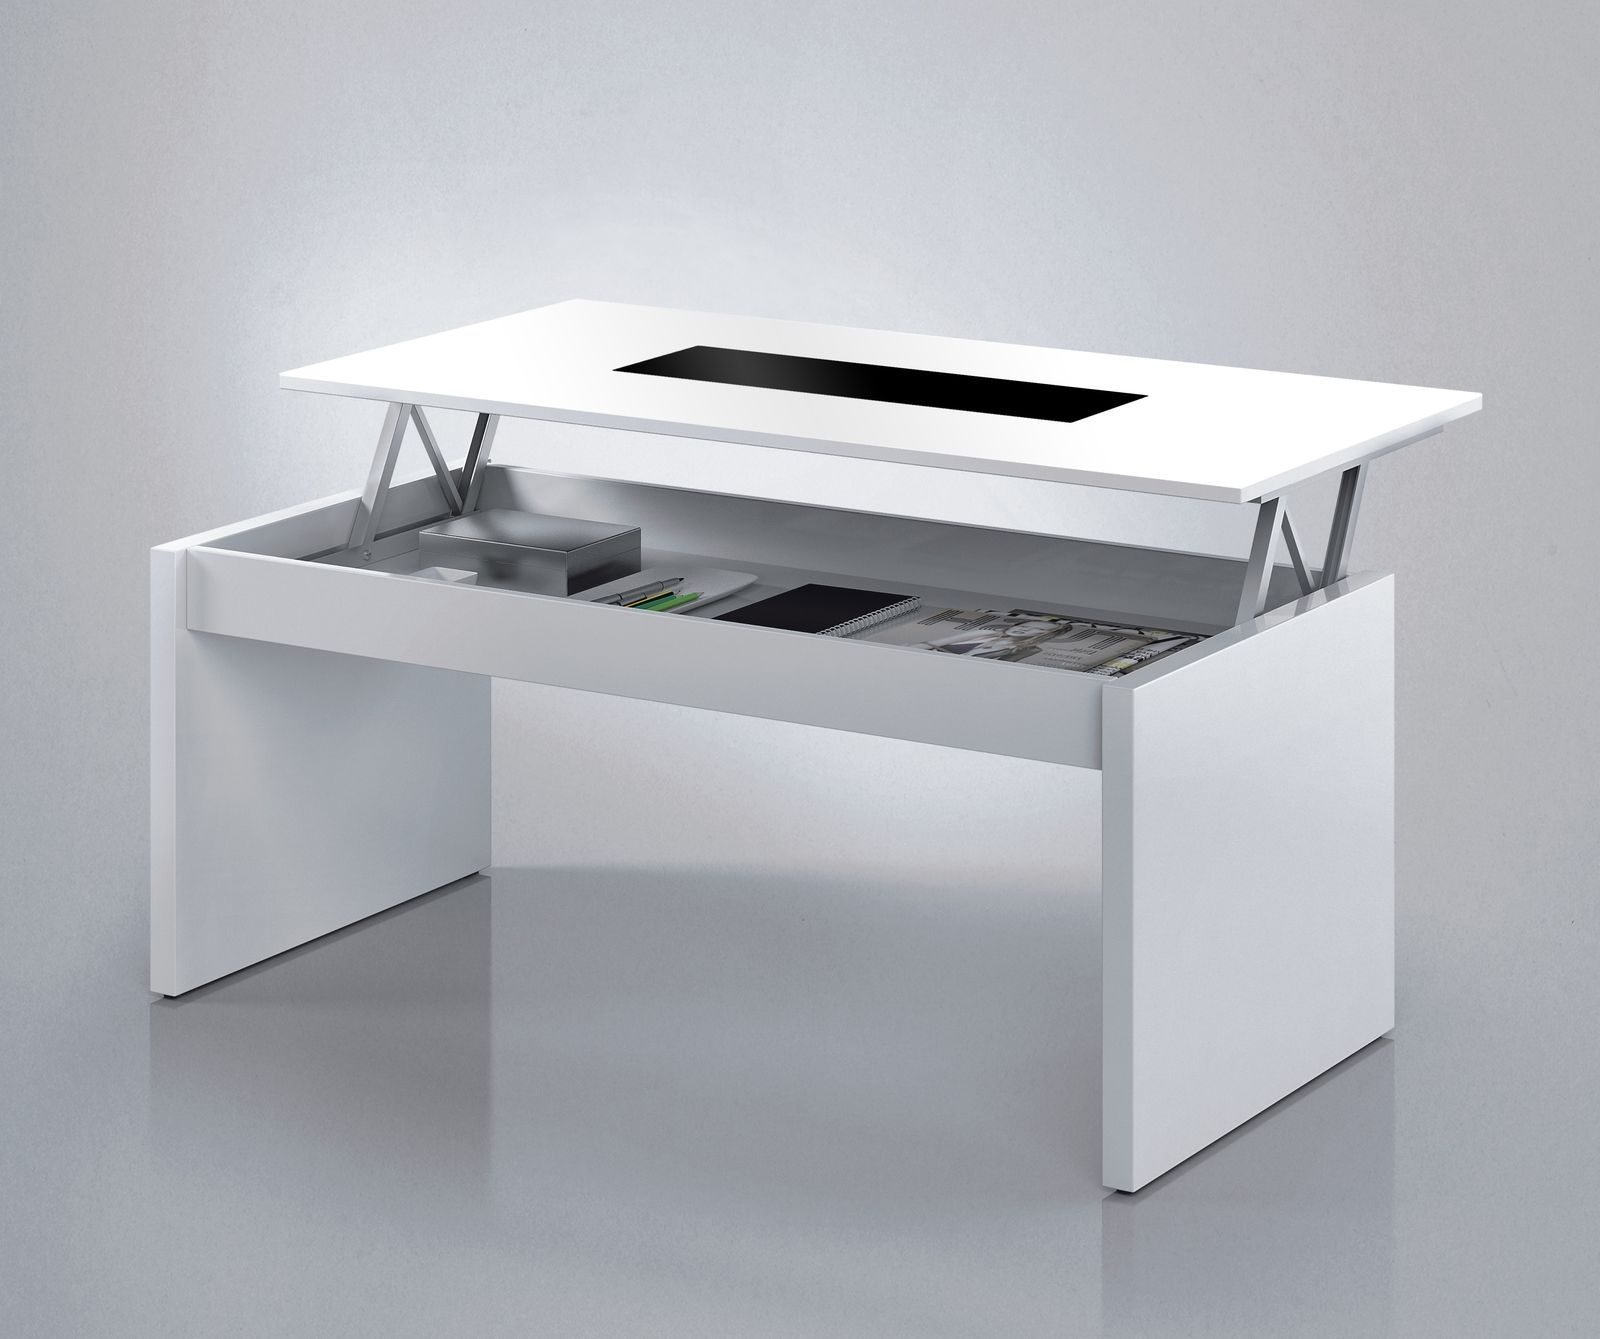 Lucia Lift Up Coffee Table Storage Modern Whiteglass Lounge Riser